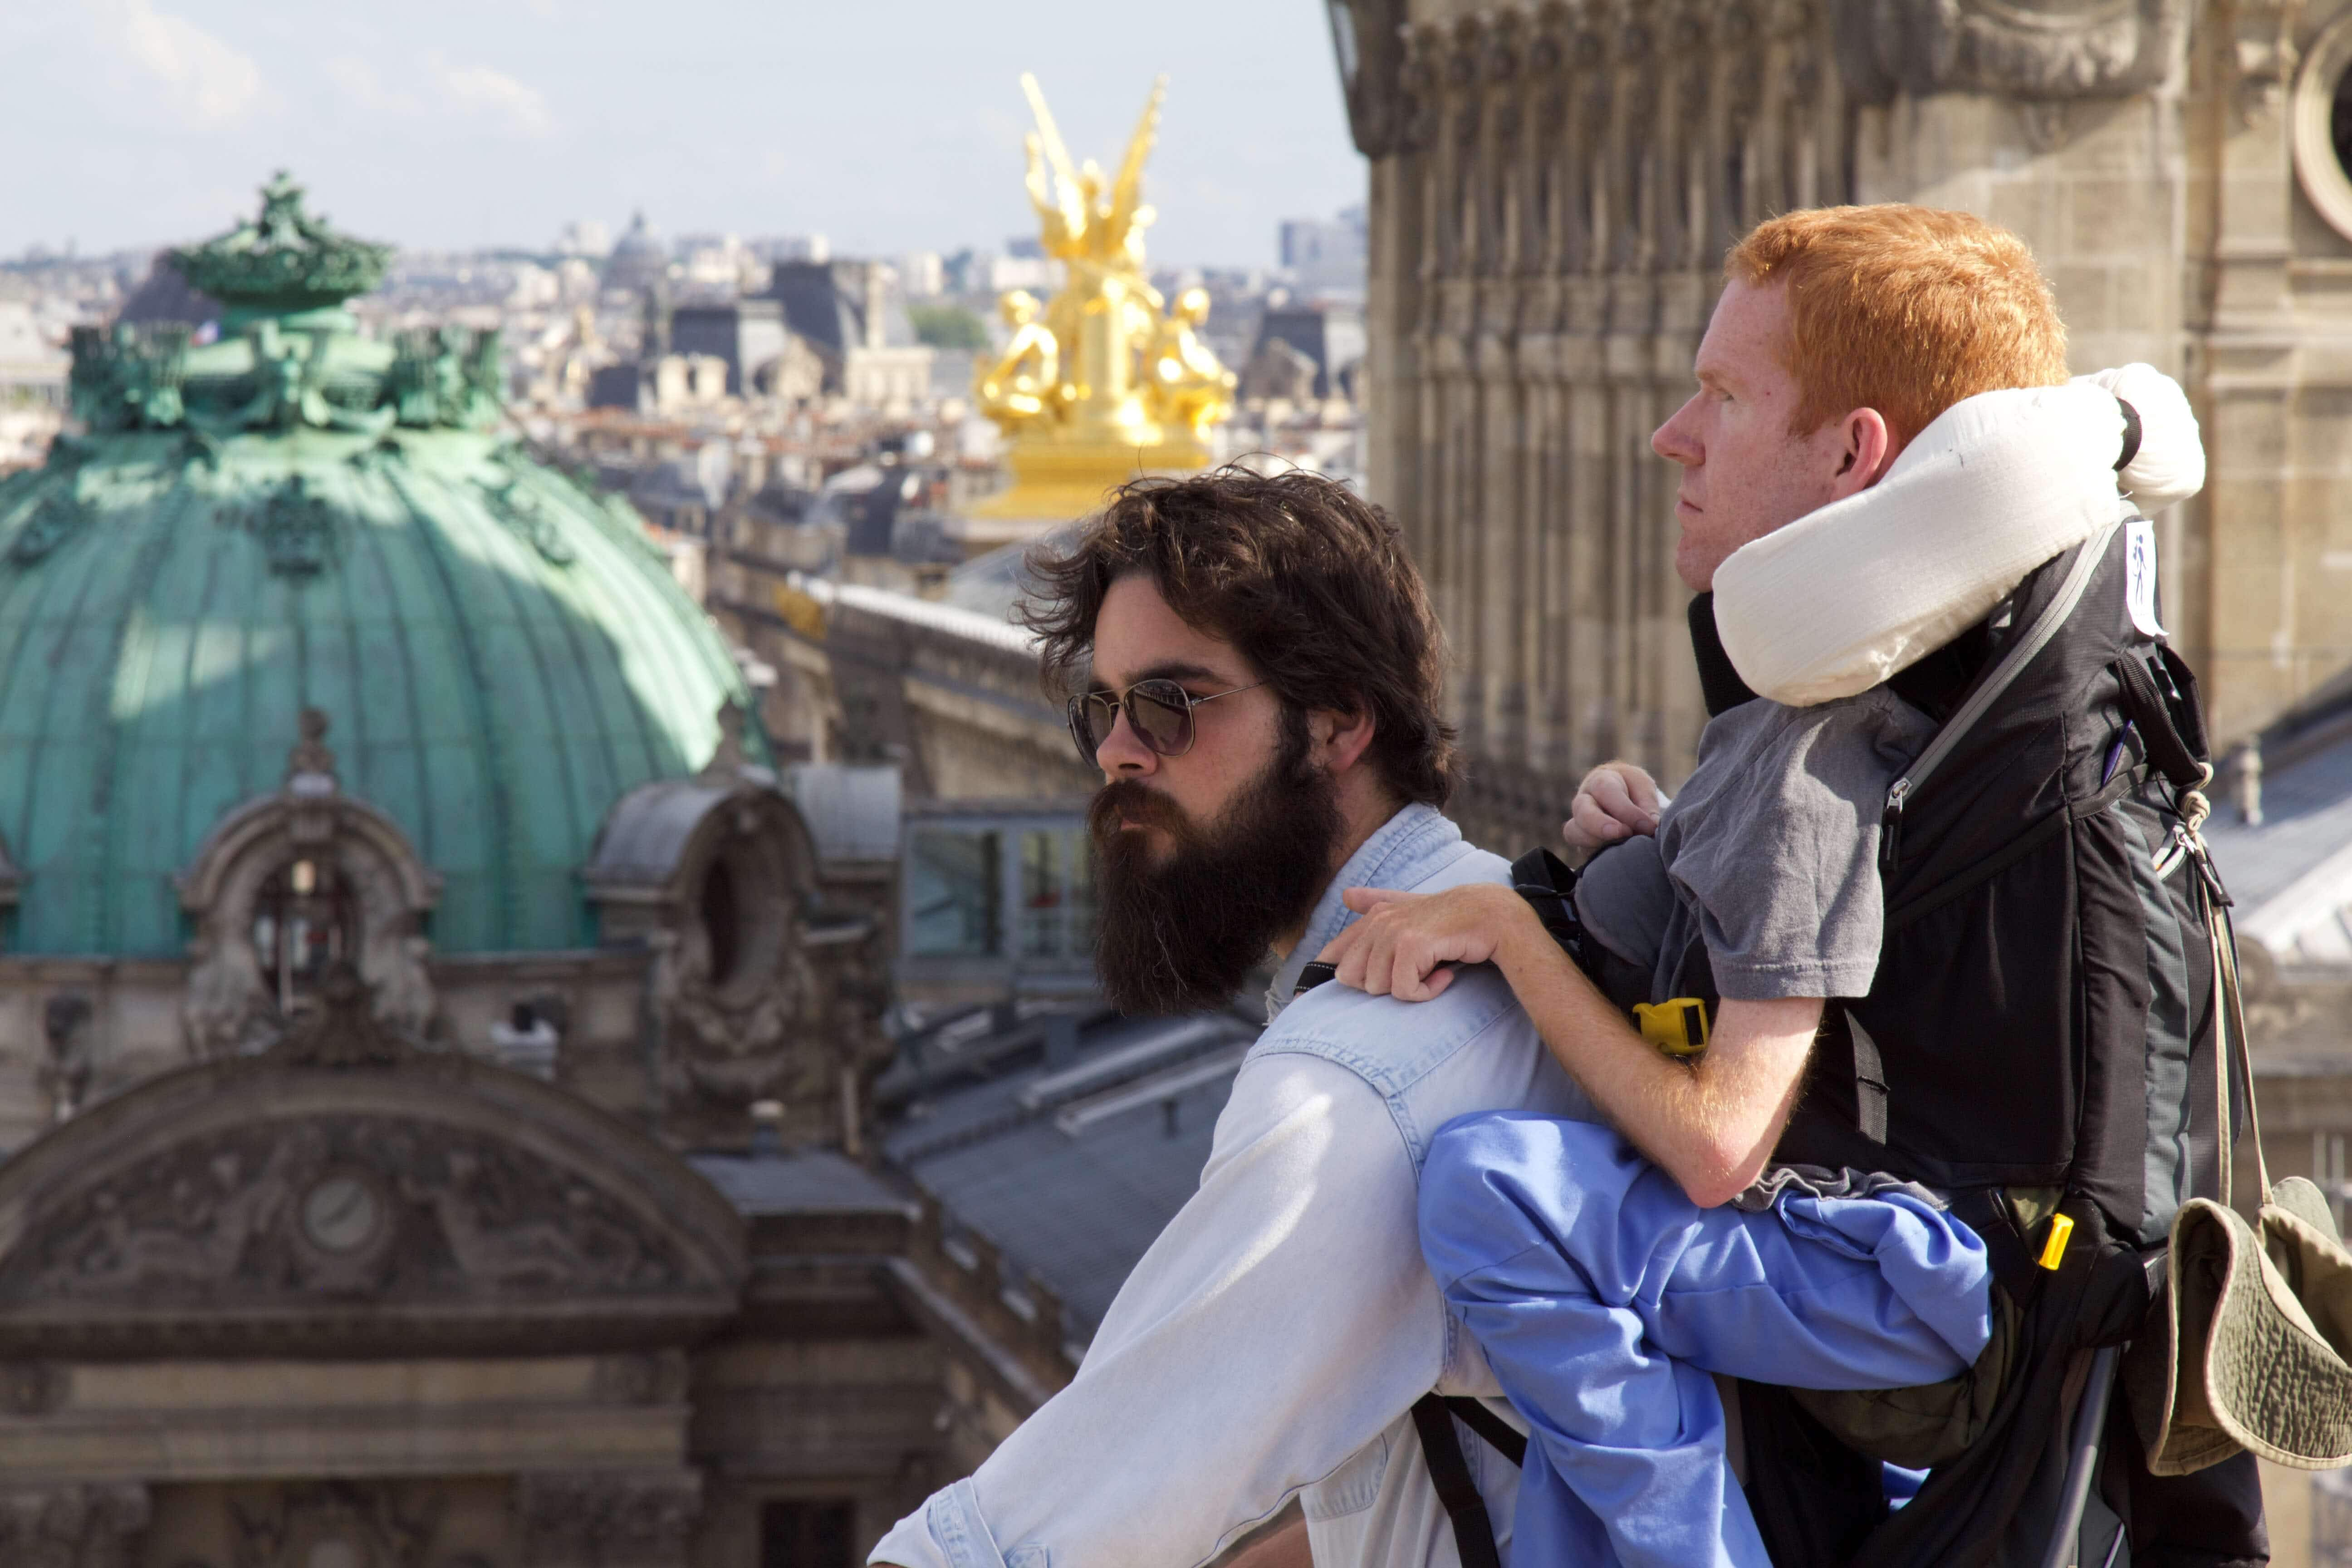 The author who travels the world as a 'human backpack'